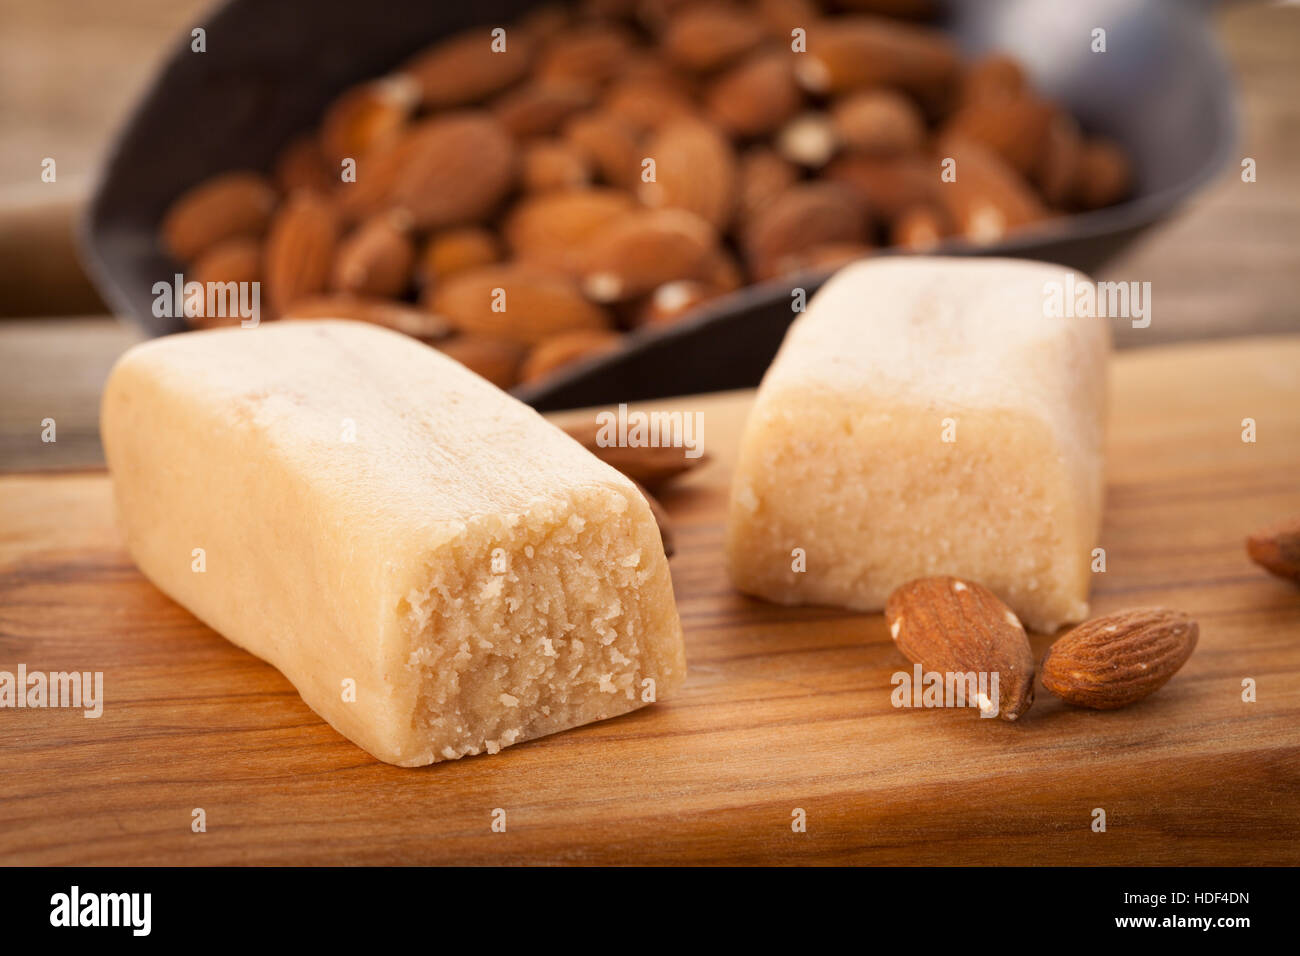 Marzipan bar and almonds on wooden chopping board Stock Photo